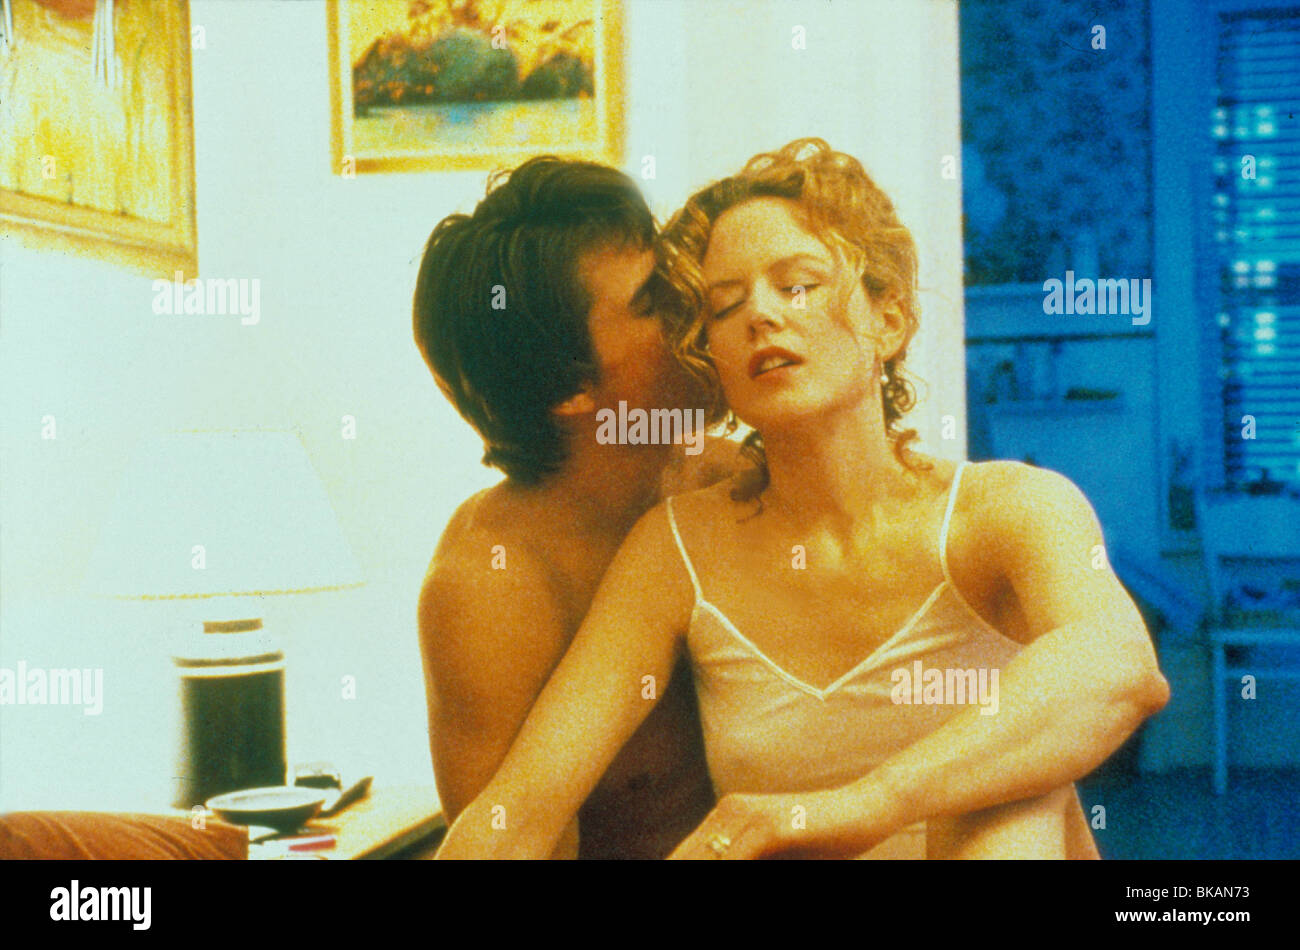 EYES WIDE SHUT (1999) TOM CRUISE, NICOLE KIDMAN EWSH 034 - Stock Image